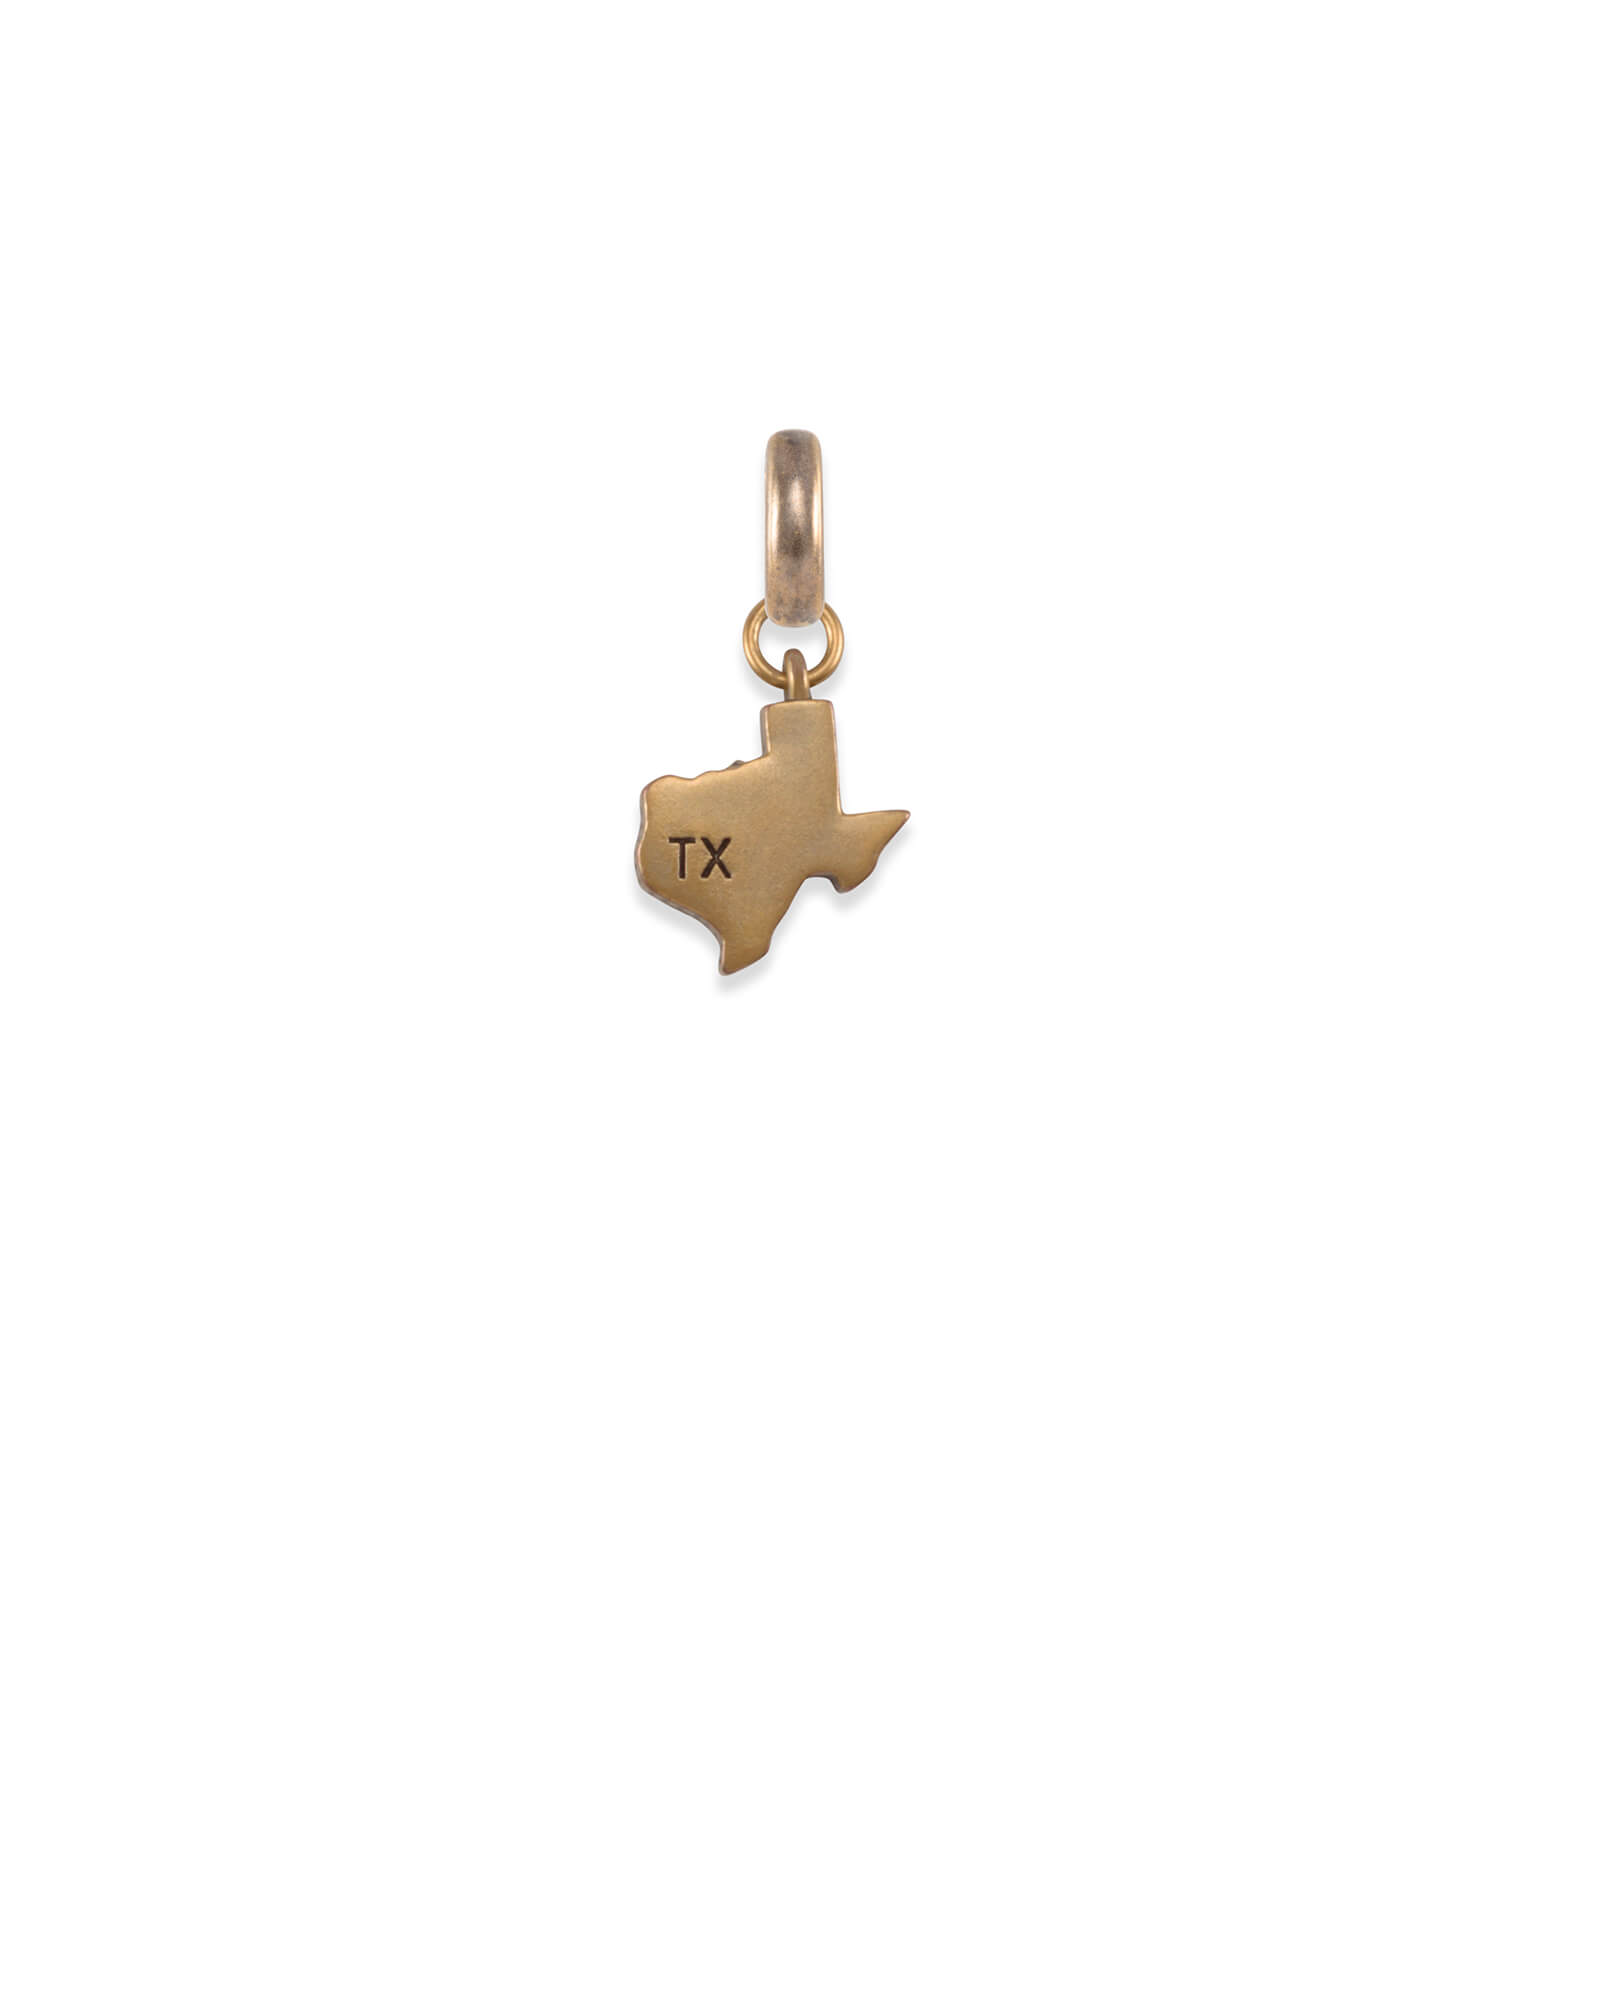 The State of Texas Charm in Vintage Gold